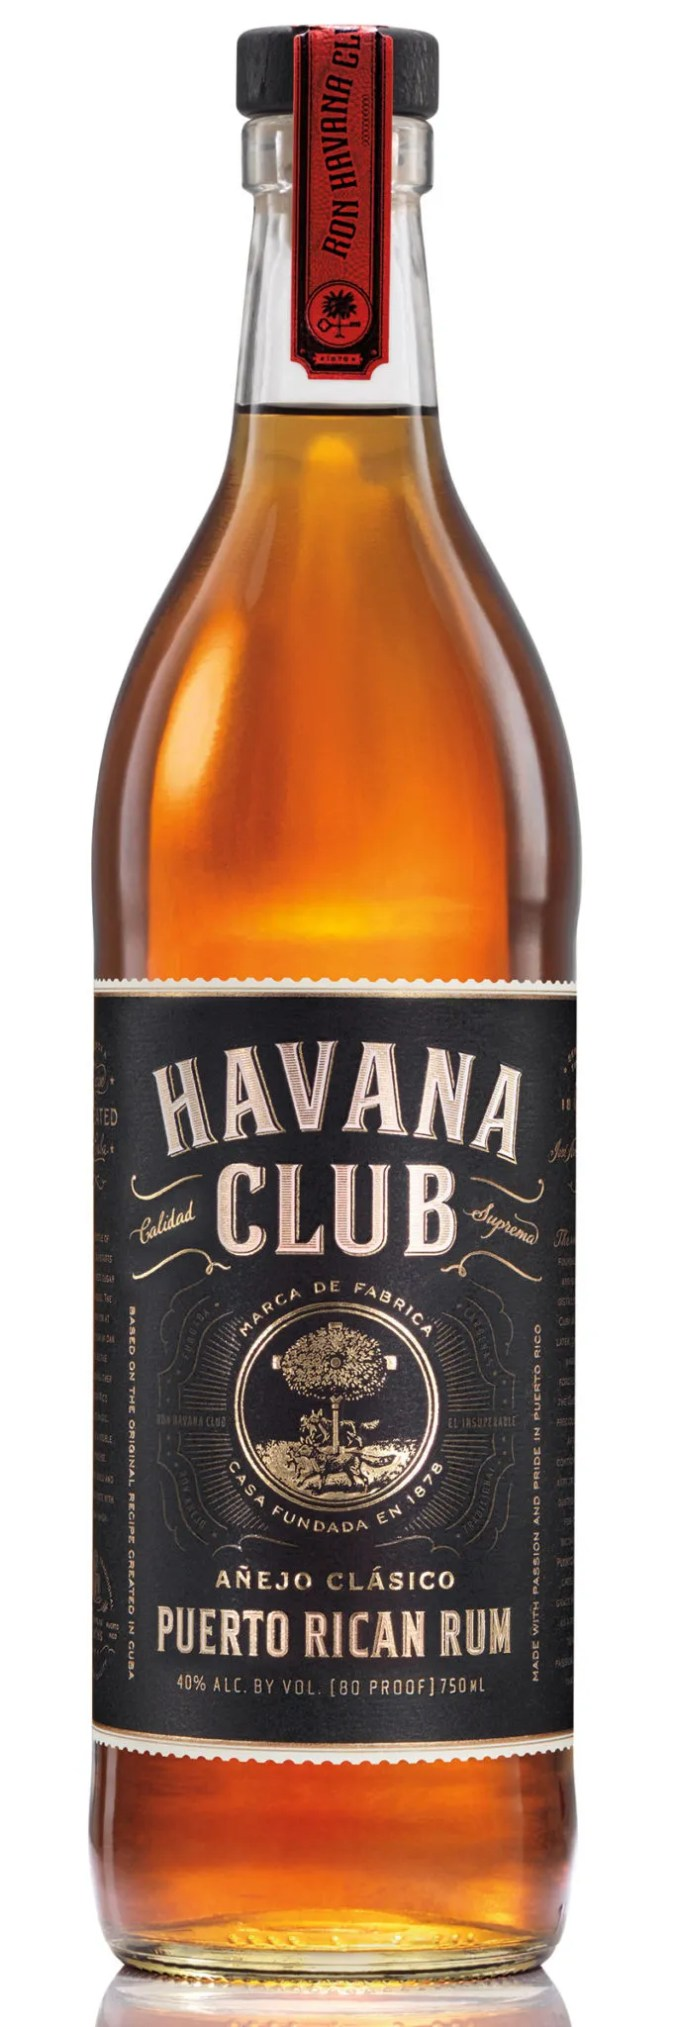 Bacardi produces the US version of Havana Club Añejo Clasico from Puerto Rico based on the original Arechabala family recipe from Cuba.